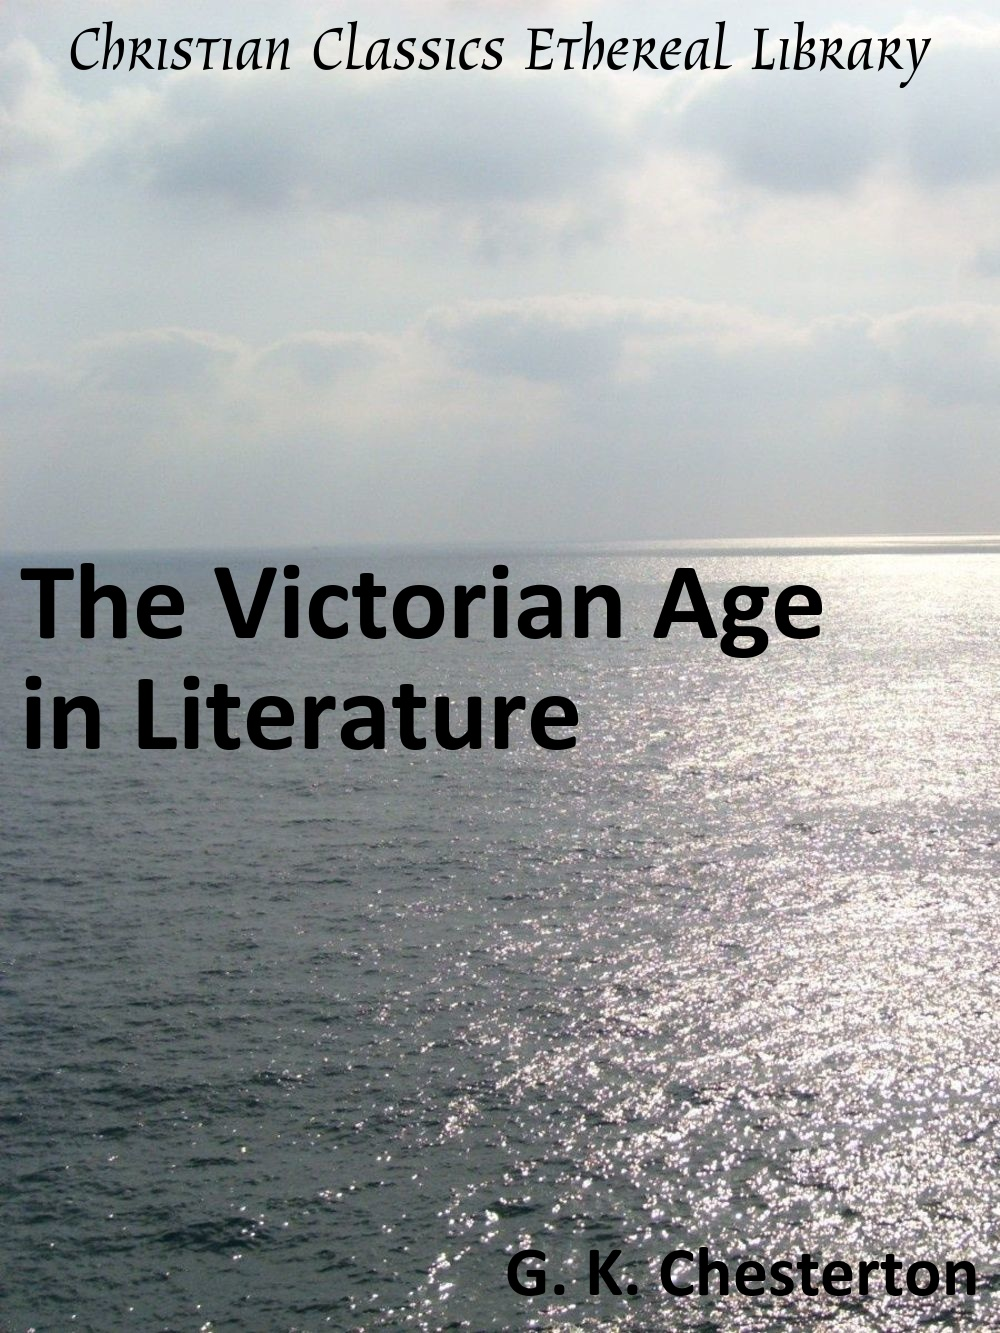 an analysis of the book on victorian era and the subject of sexuality The book uses a variety of fascinating primary sources to analyze the girls of the victorian era: diaries, photographs, advertisements, and postcards that all help depict shifting attitudes towards girls and girlhood through the past 200 years.